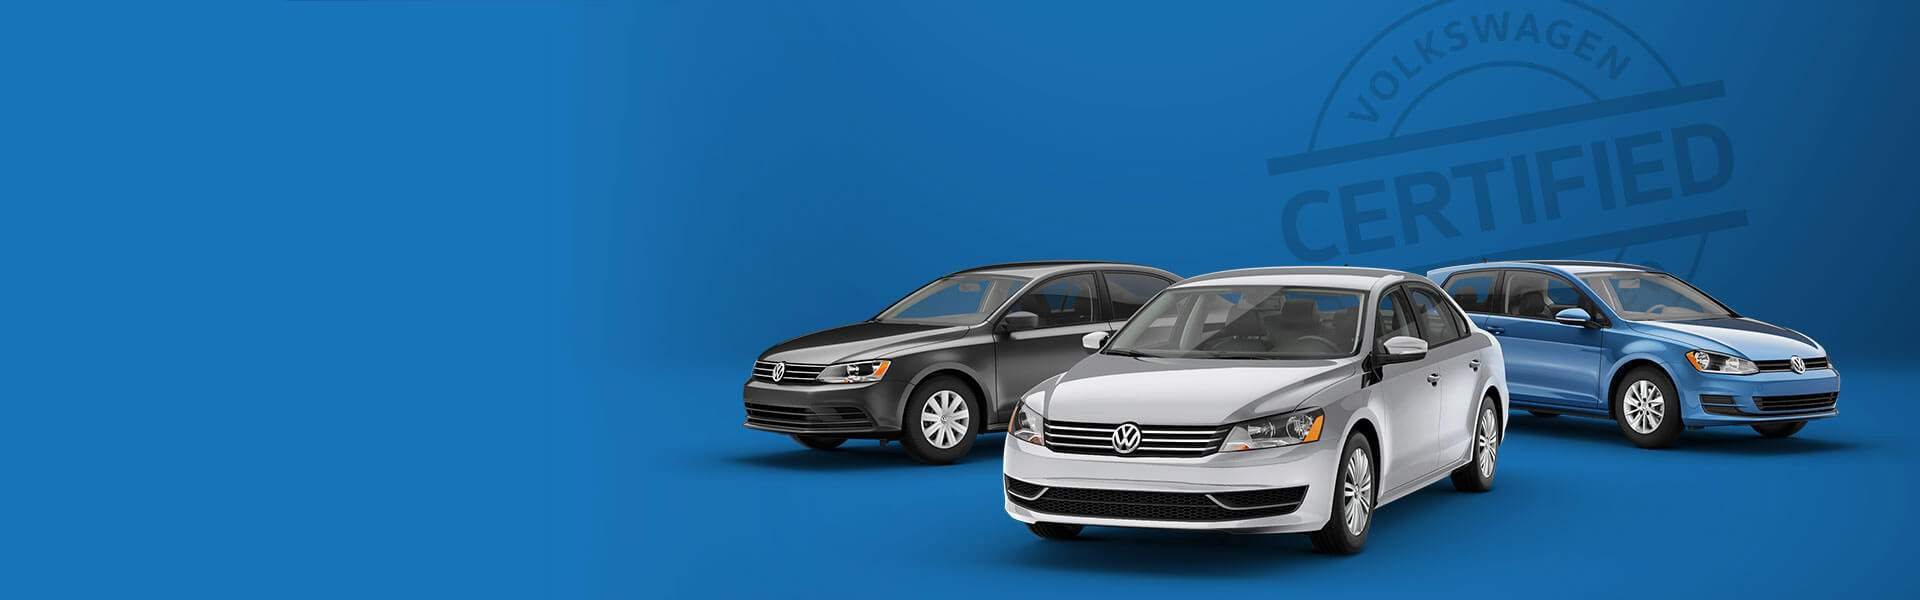 Volkswagen Certified Pre-Owned in Folsom, CA